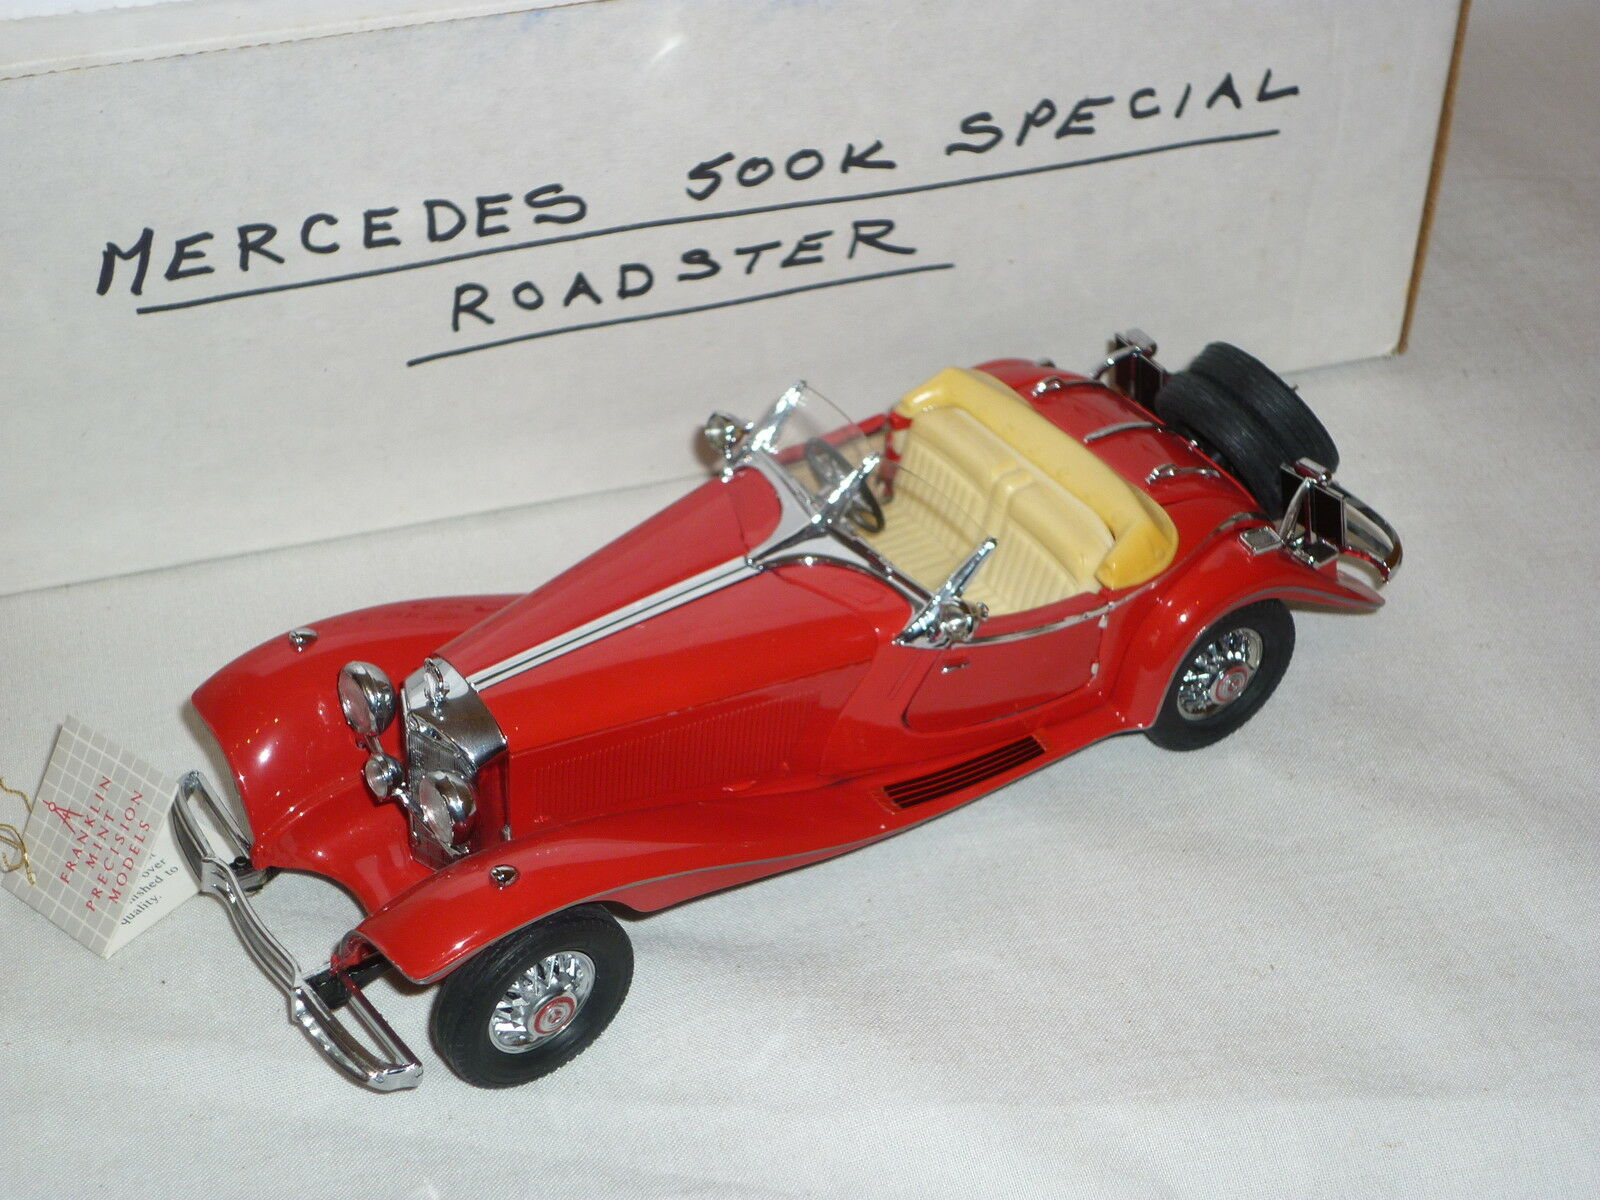 A Franklin mint scale model of a 1935 Mercedes benz 500k Roadster,  boxed